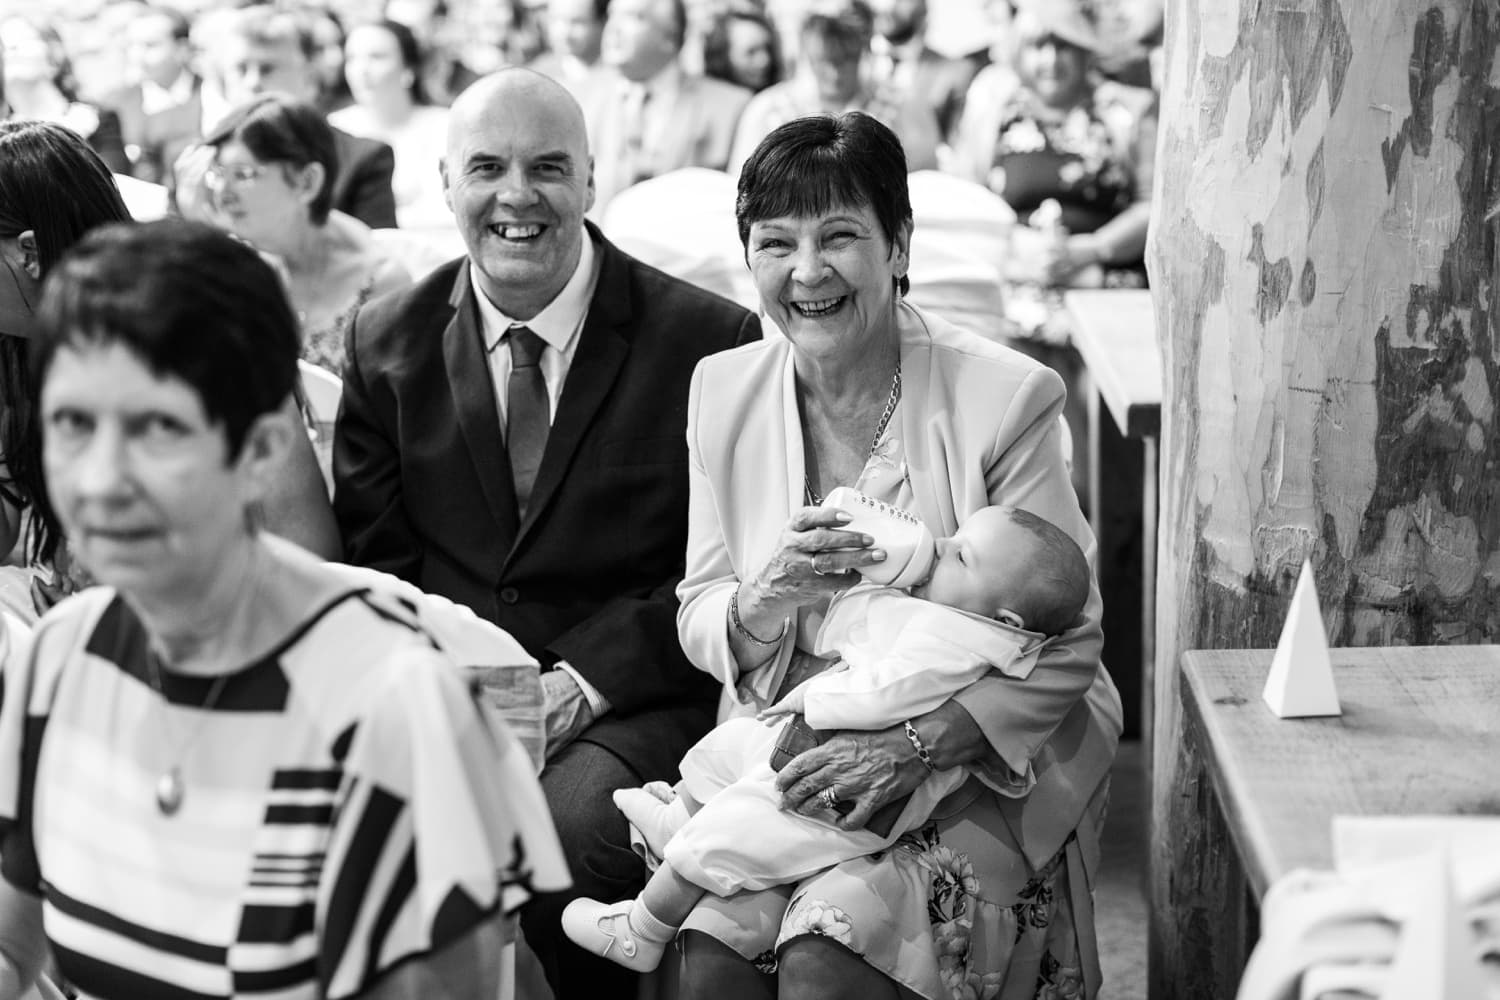 Baby gets fed during wedding ceremony